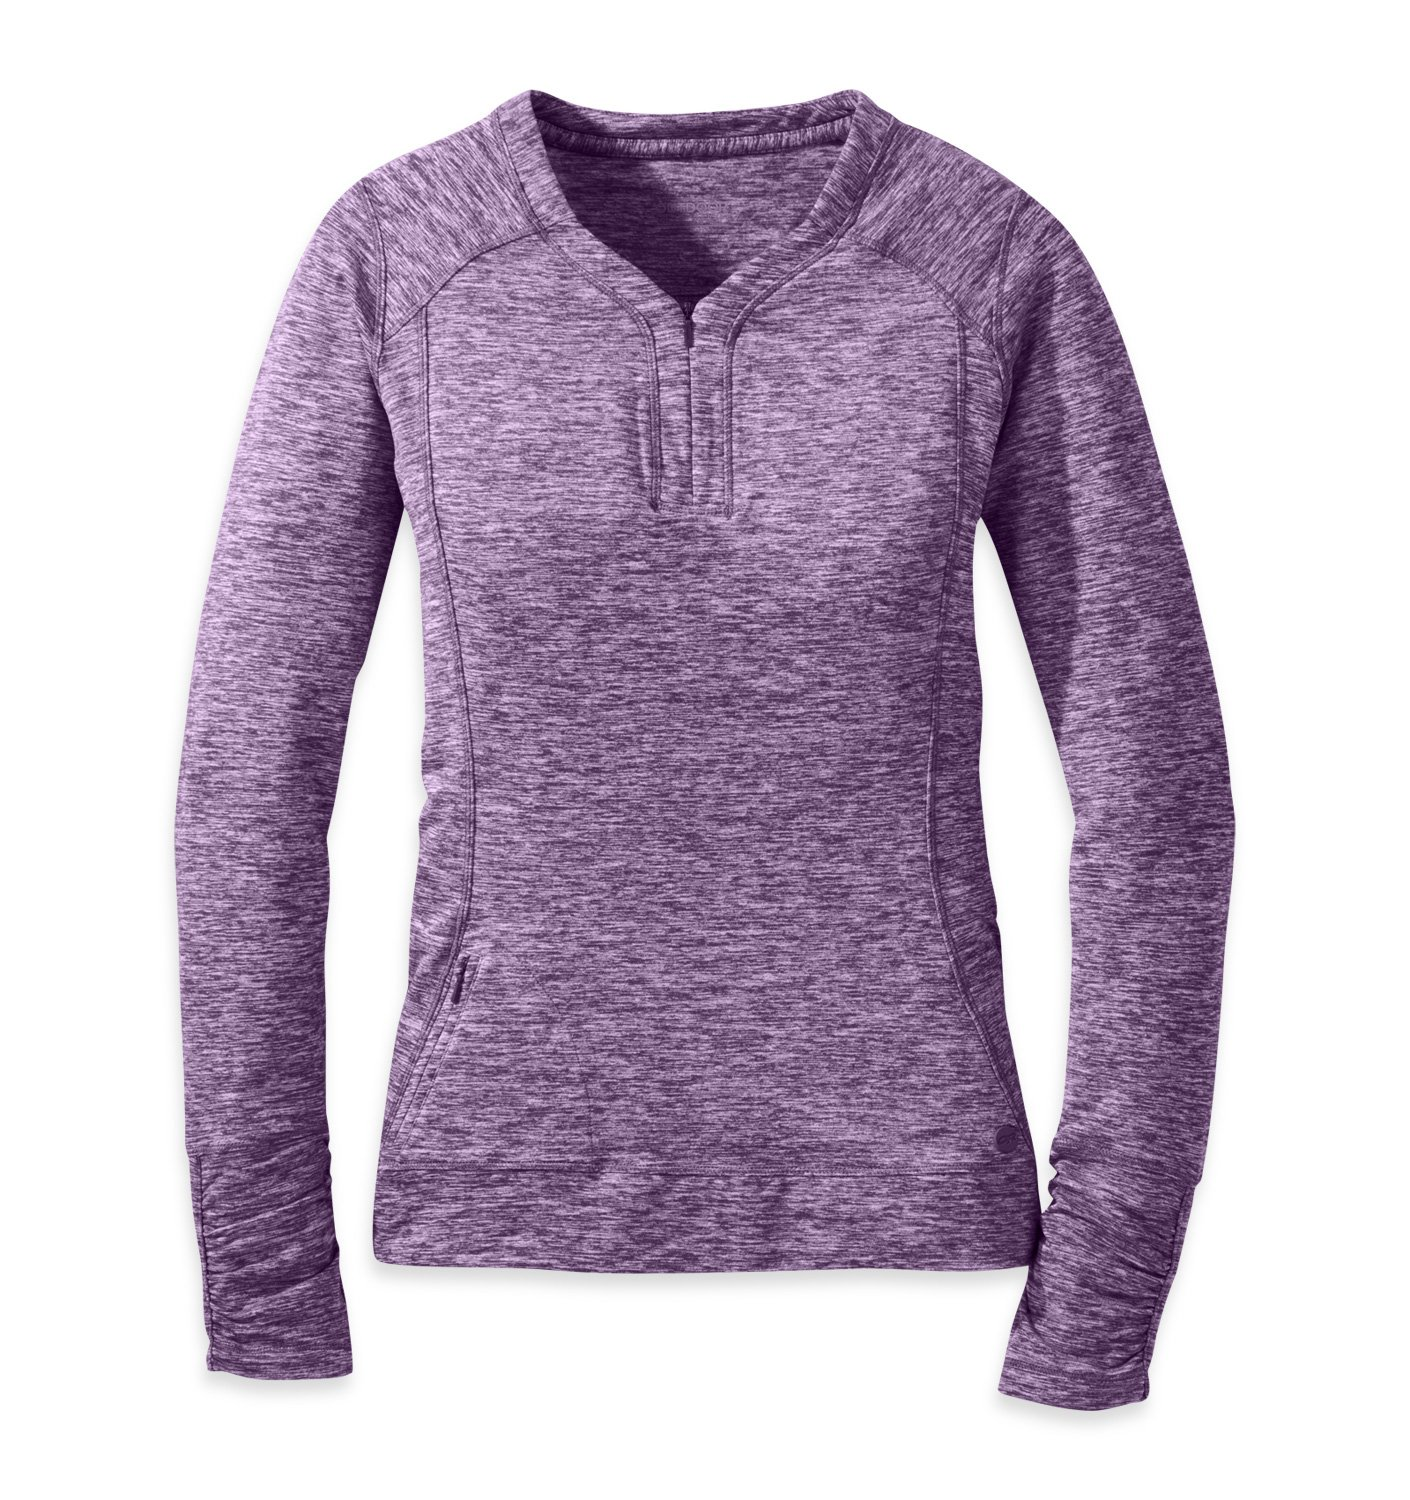 Outdoor Research Women's Melody L/S Shirt, Elderberry, Medium by Outdoor Research